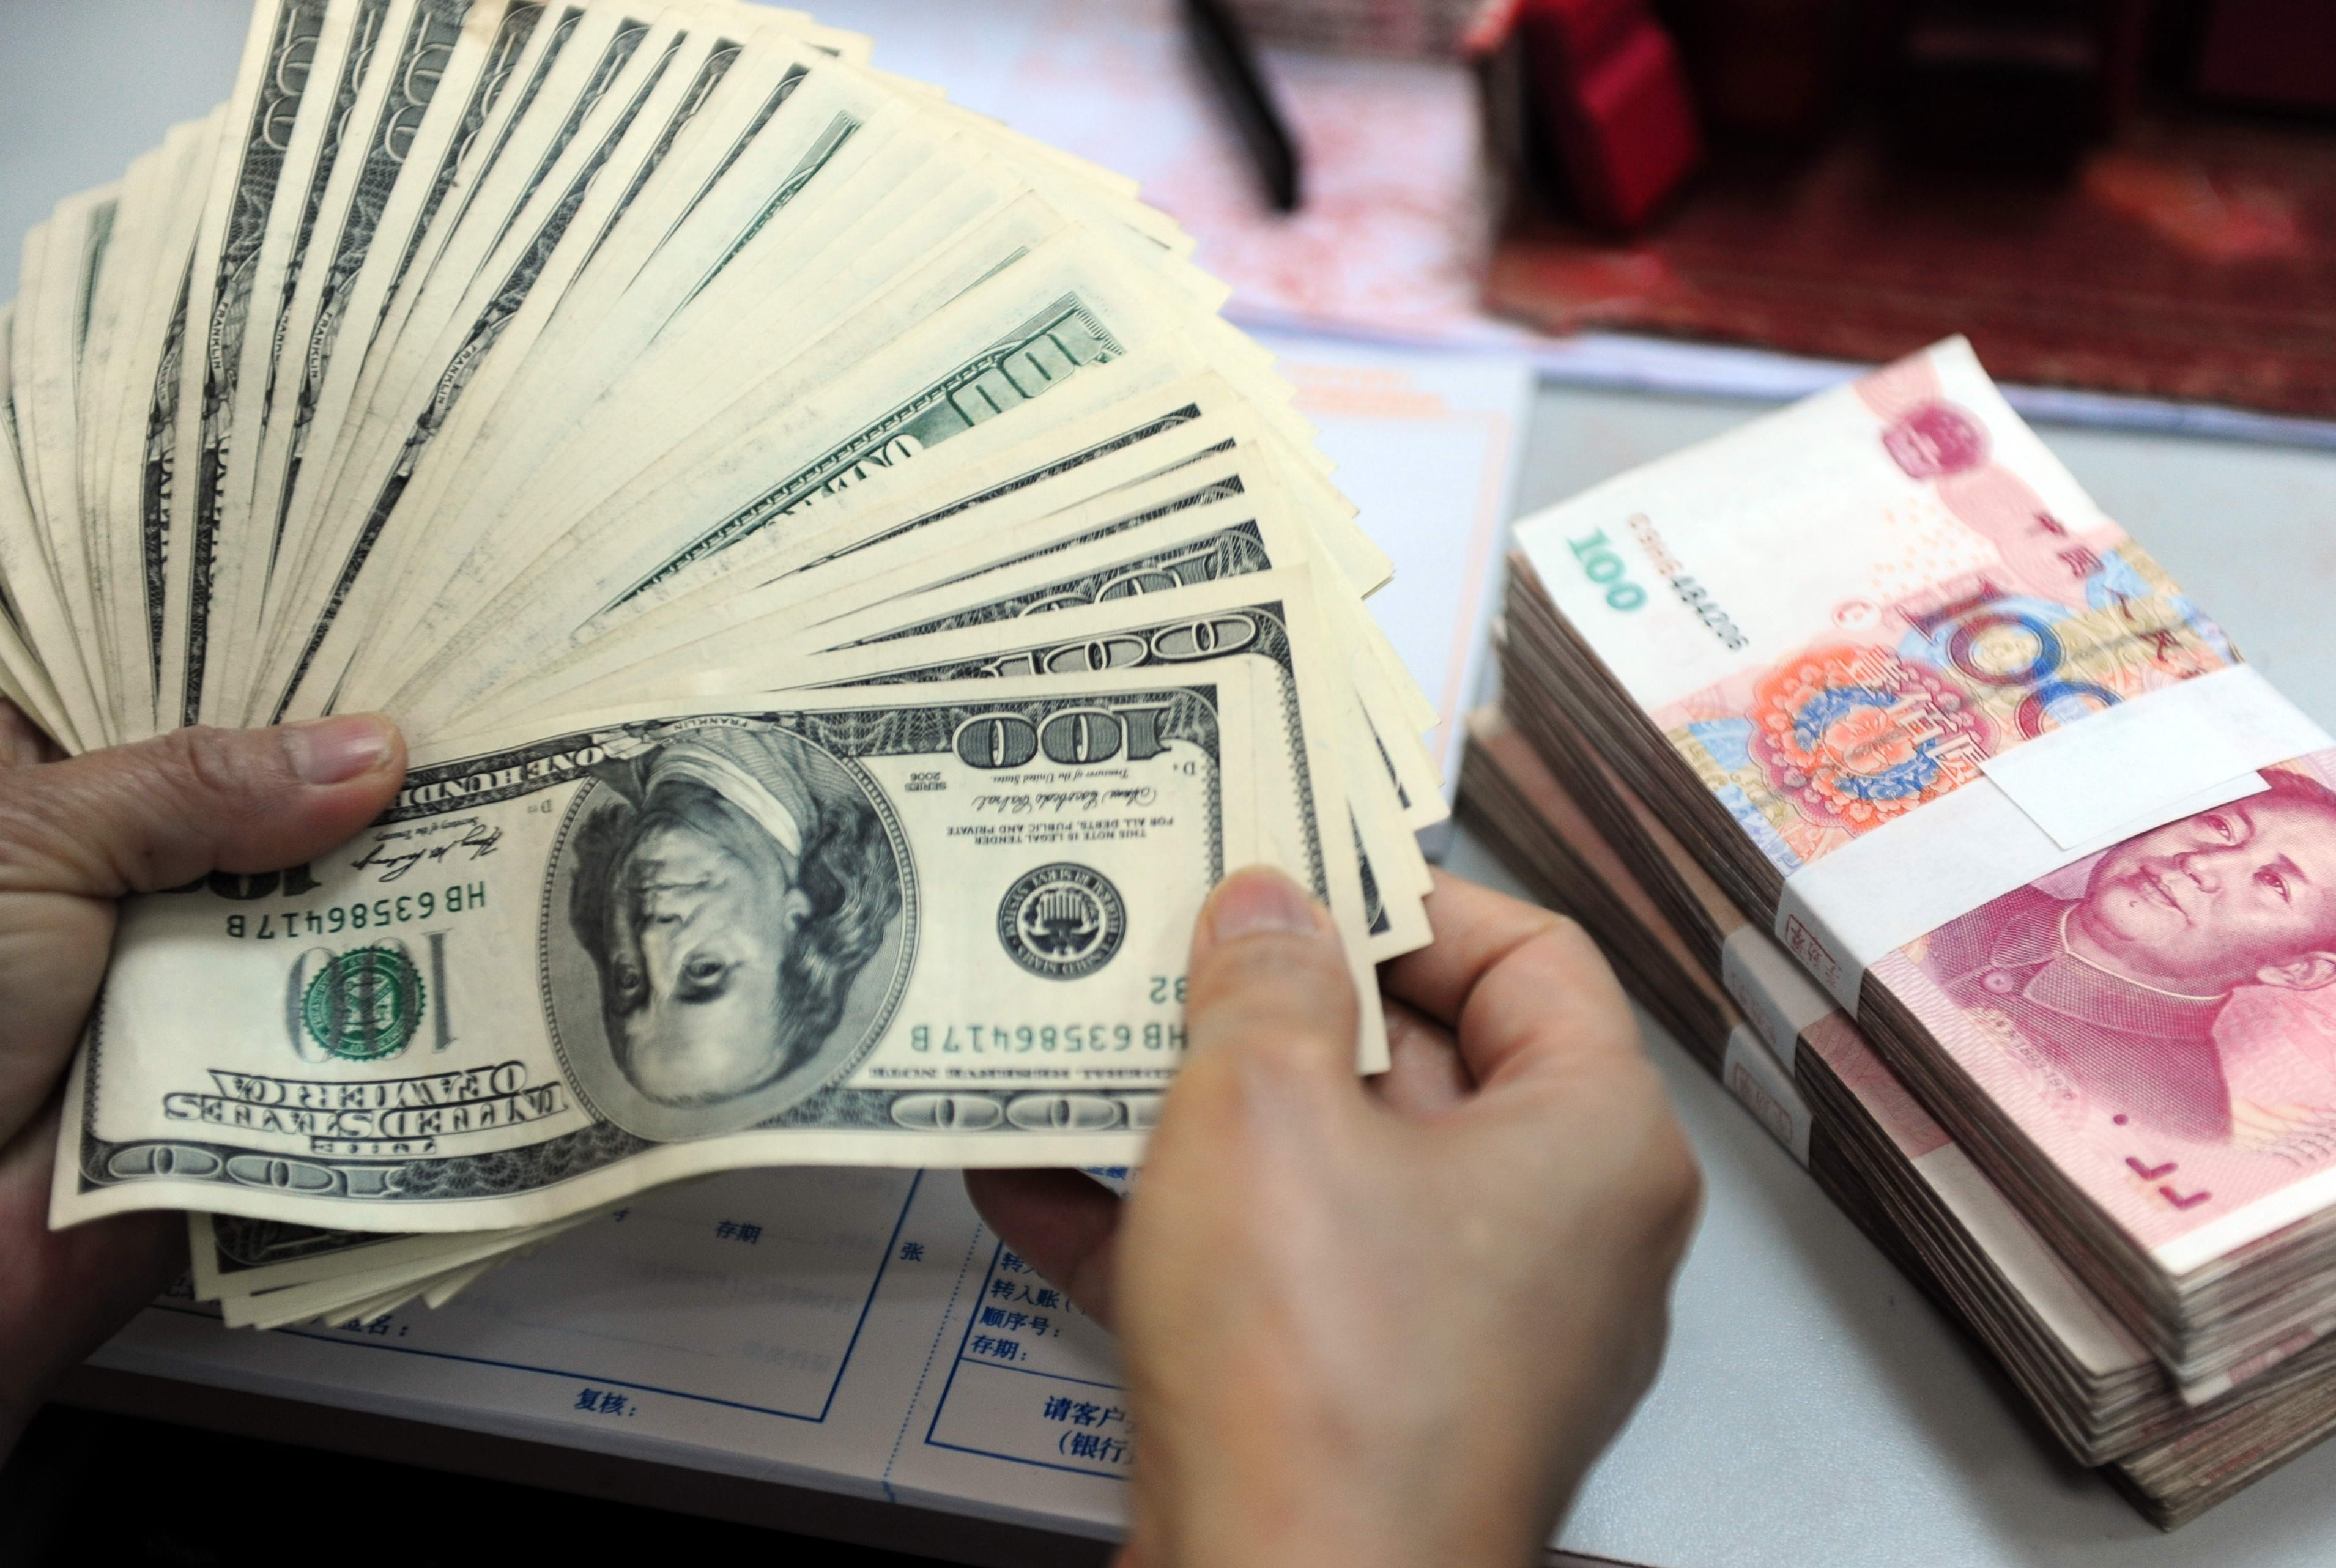 China exchange rate drop could continue into 2020 as it tries to